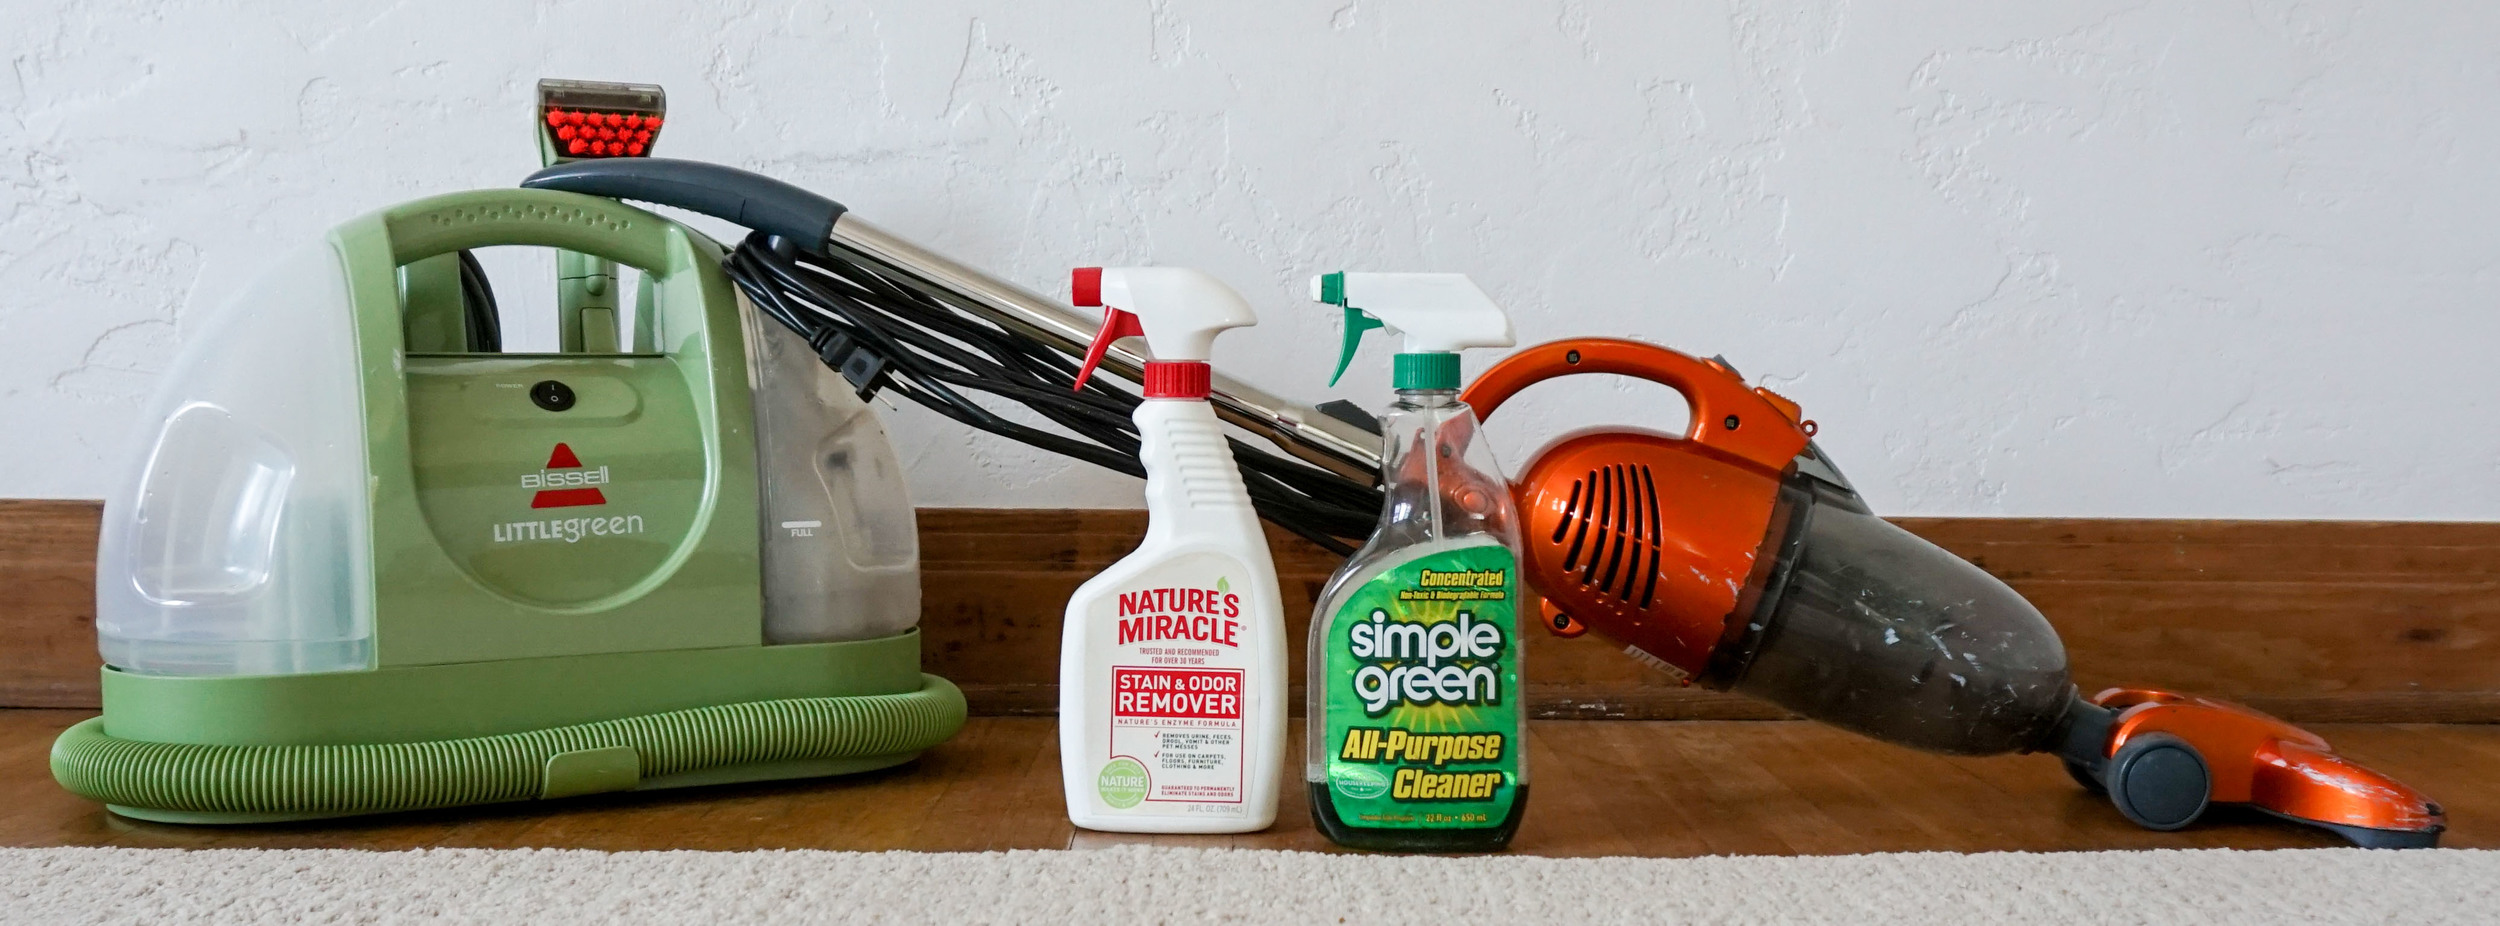 Kick it up a notch with a mist of Simple Green or Nature's Miracle (for pets) to get carpets squeekin' clean.